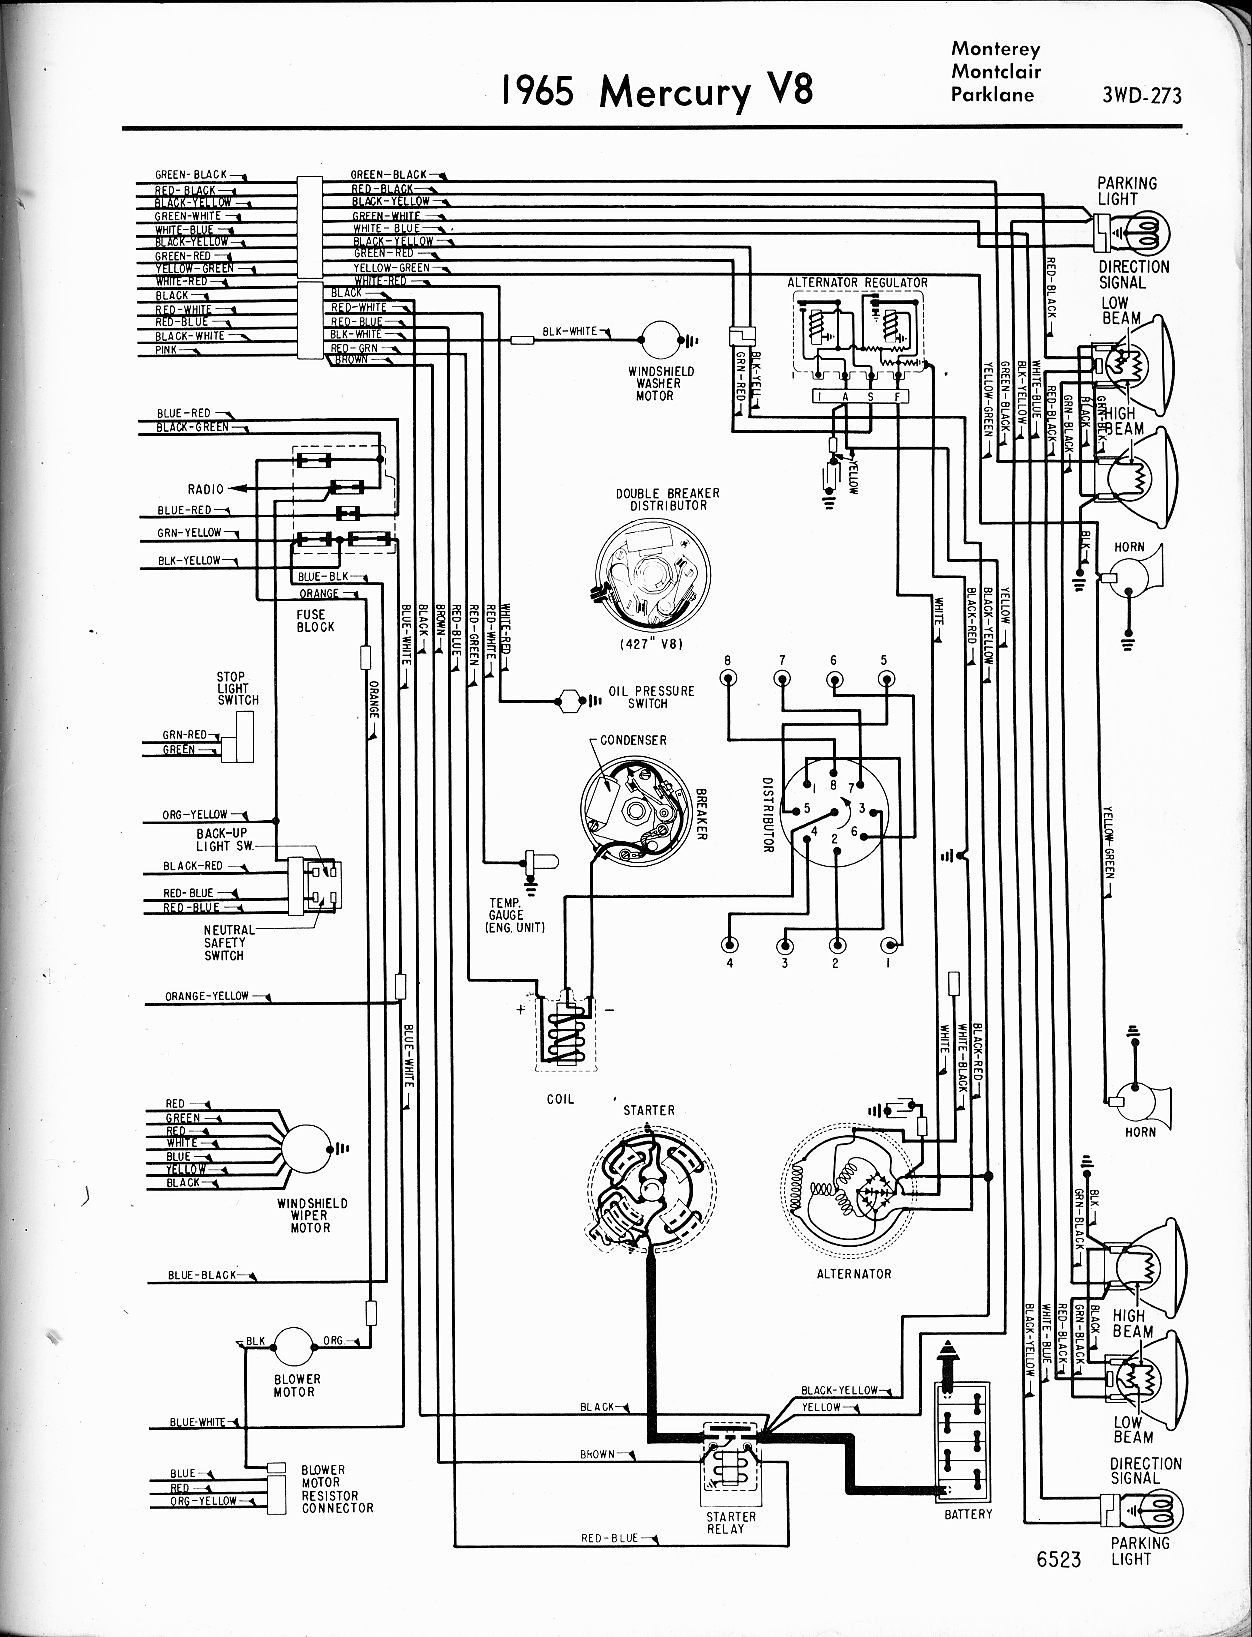 1968 cougar wiring diagrams wiring diagram host  68 mercury cougar wiring diagram #12